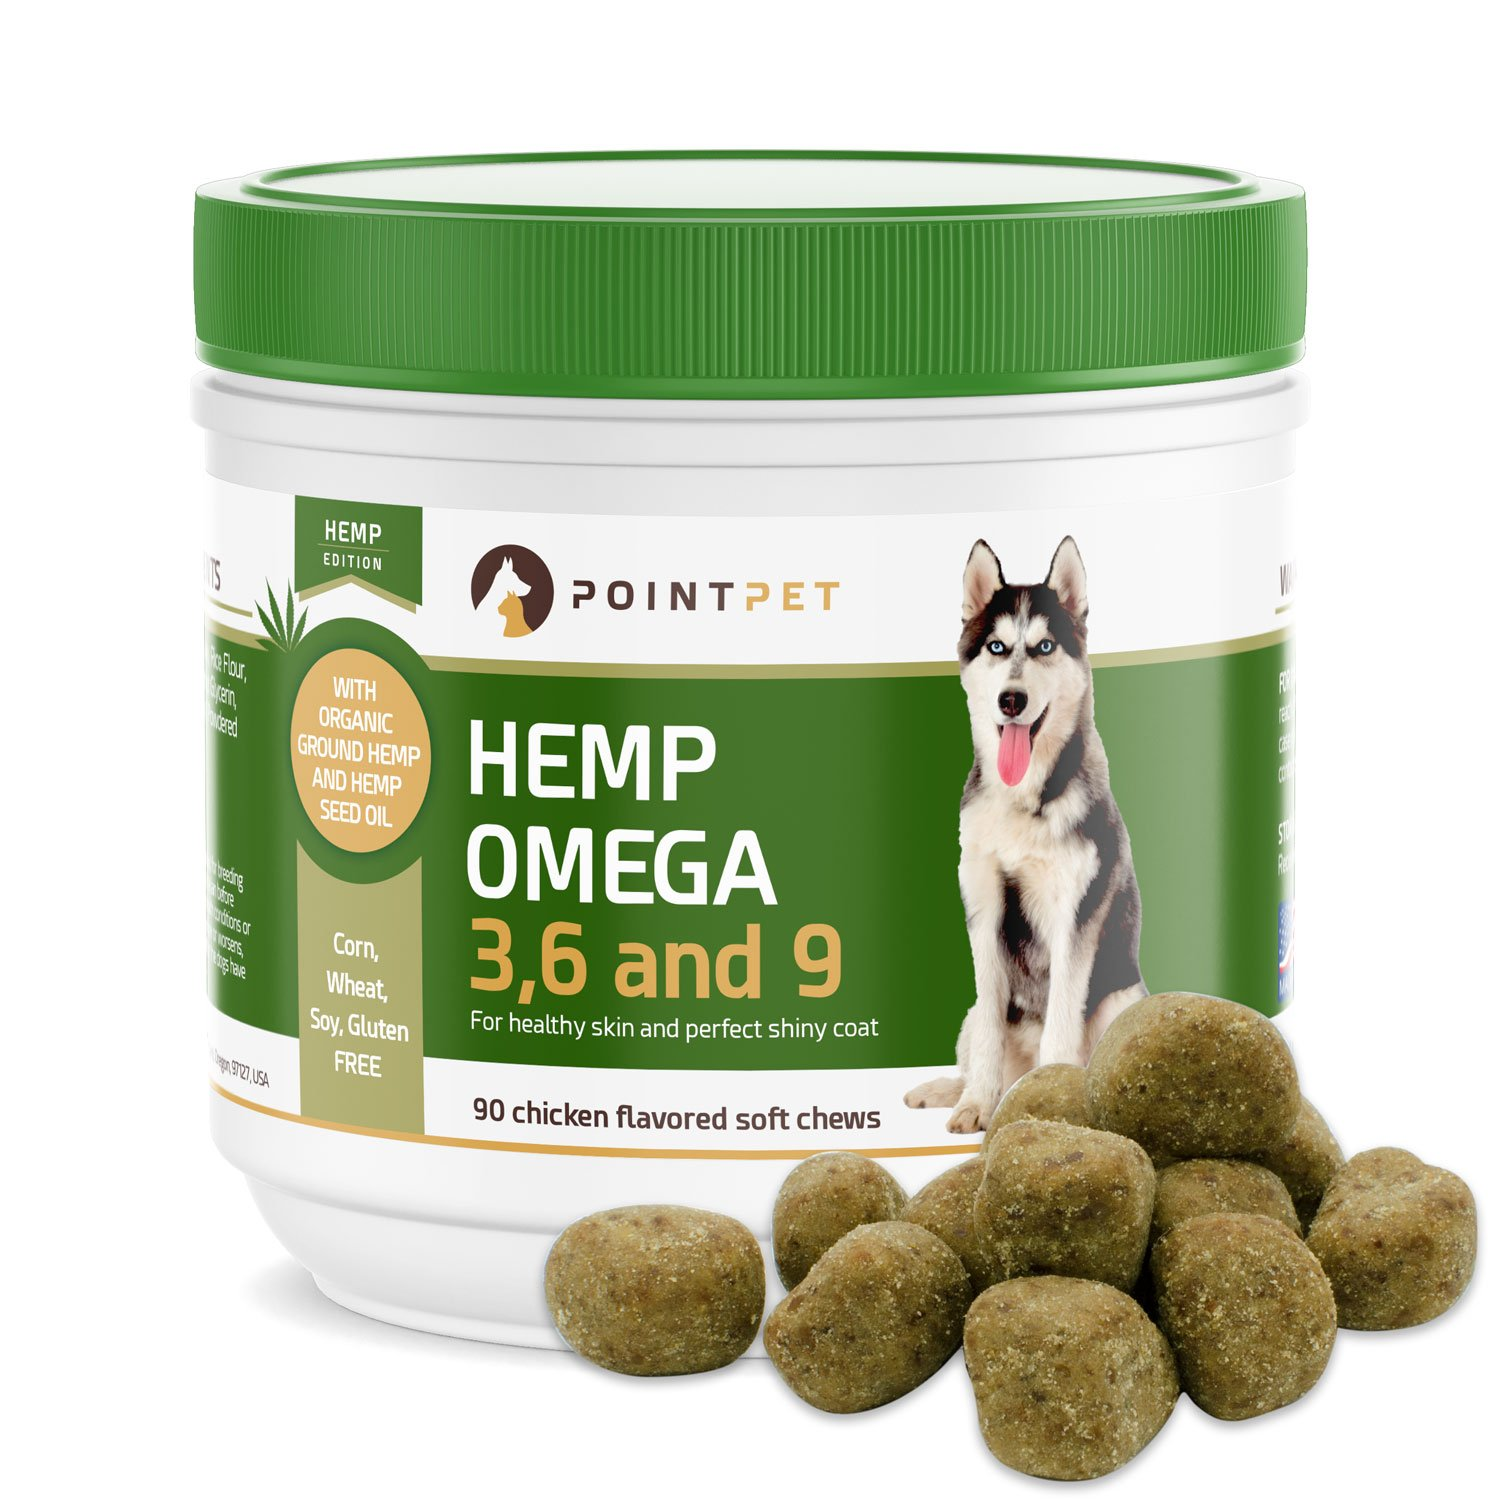 POINTPET Omega 3 6 9 for Dogs with Organic Hemp Oil - Dog Skin and Coat Fish Oil Supplement, Natural Fatty Acids EPA/DHA, Helps with Dry and Itchy Skin, Joints, Heart and Brain Health, 90 Soft Chews